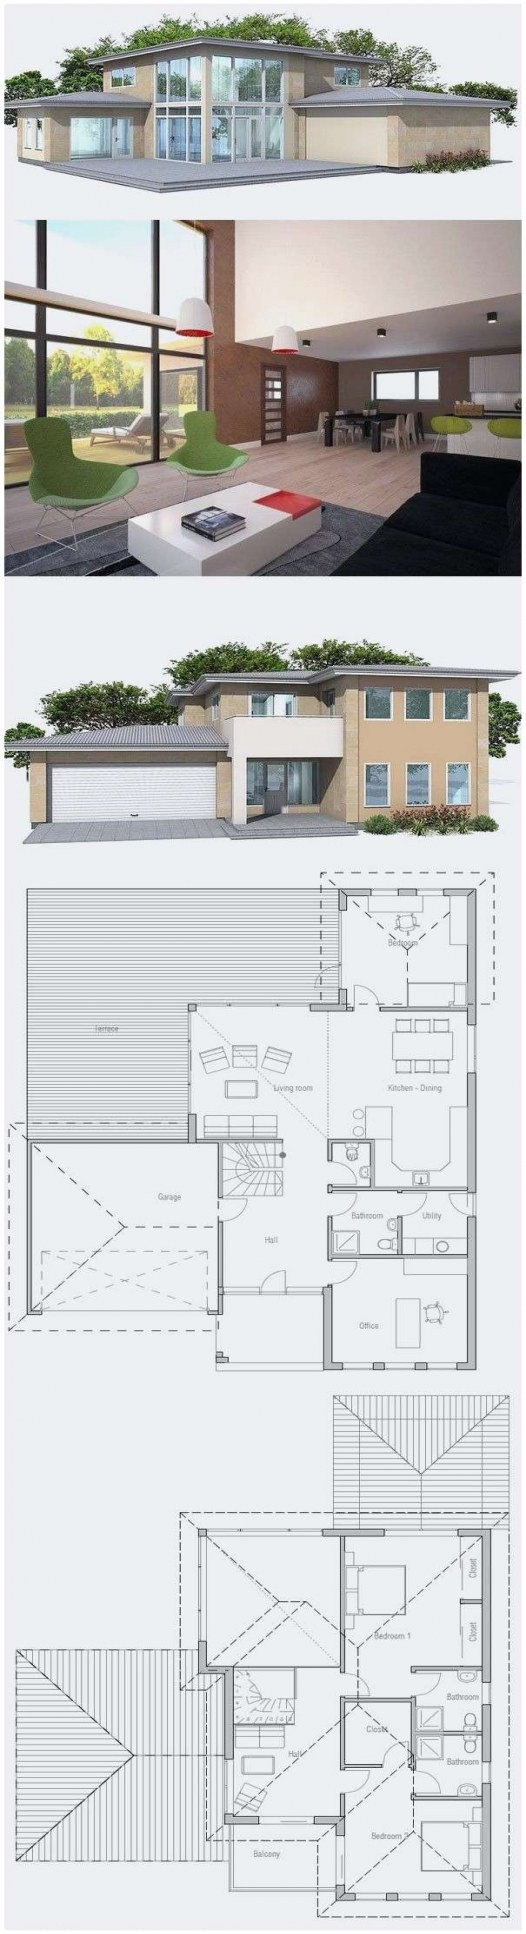 Modern House Plans for Sale Luxury Modern Mansion Floor Plans Contemporary Family Home Modern